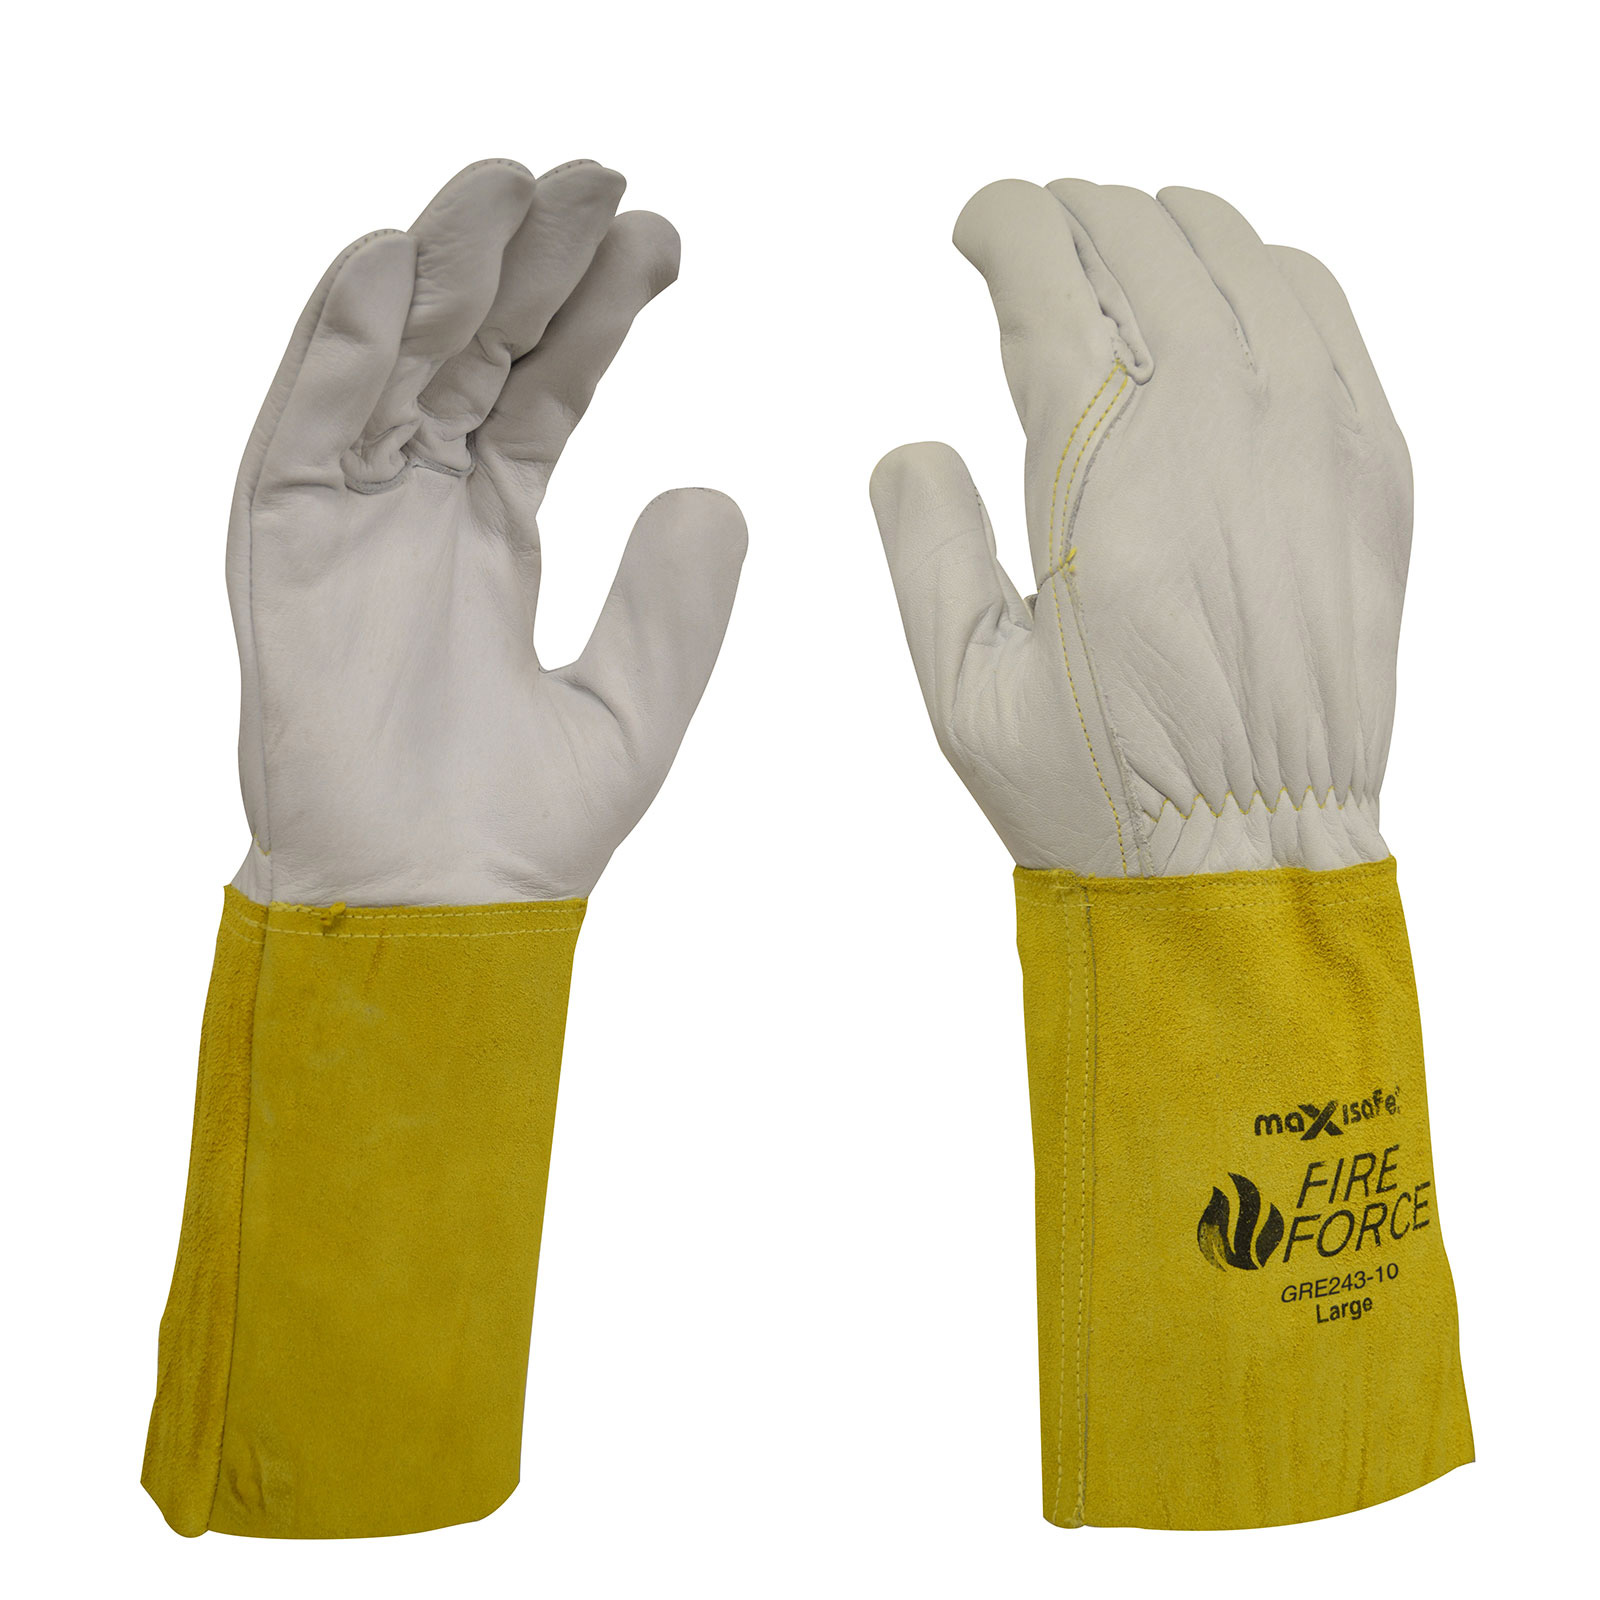 Maxisafe FireForce Extended Cuff Rigger Gloves - Large